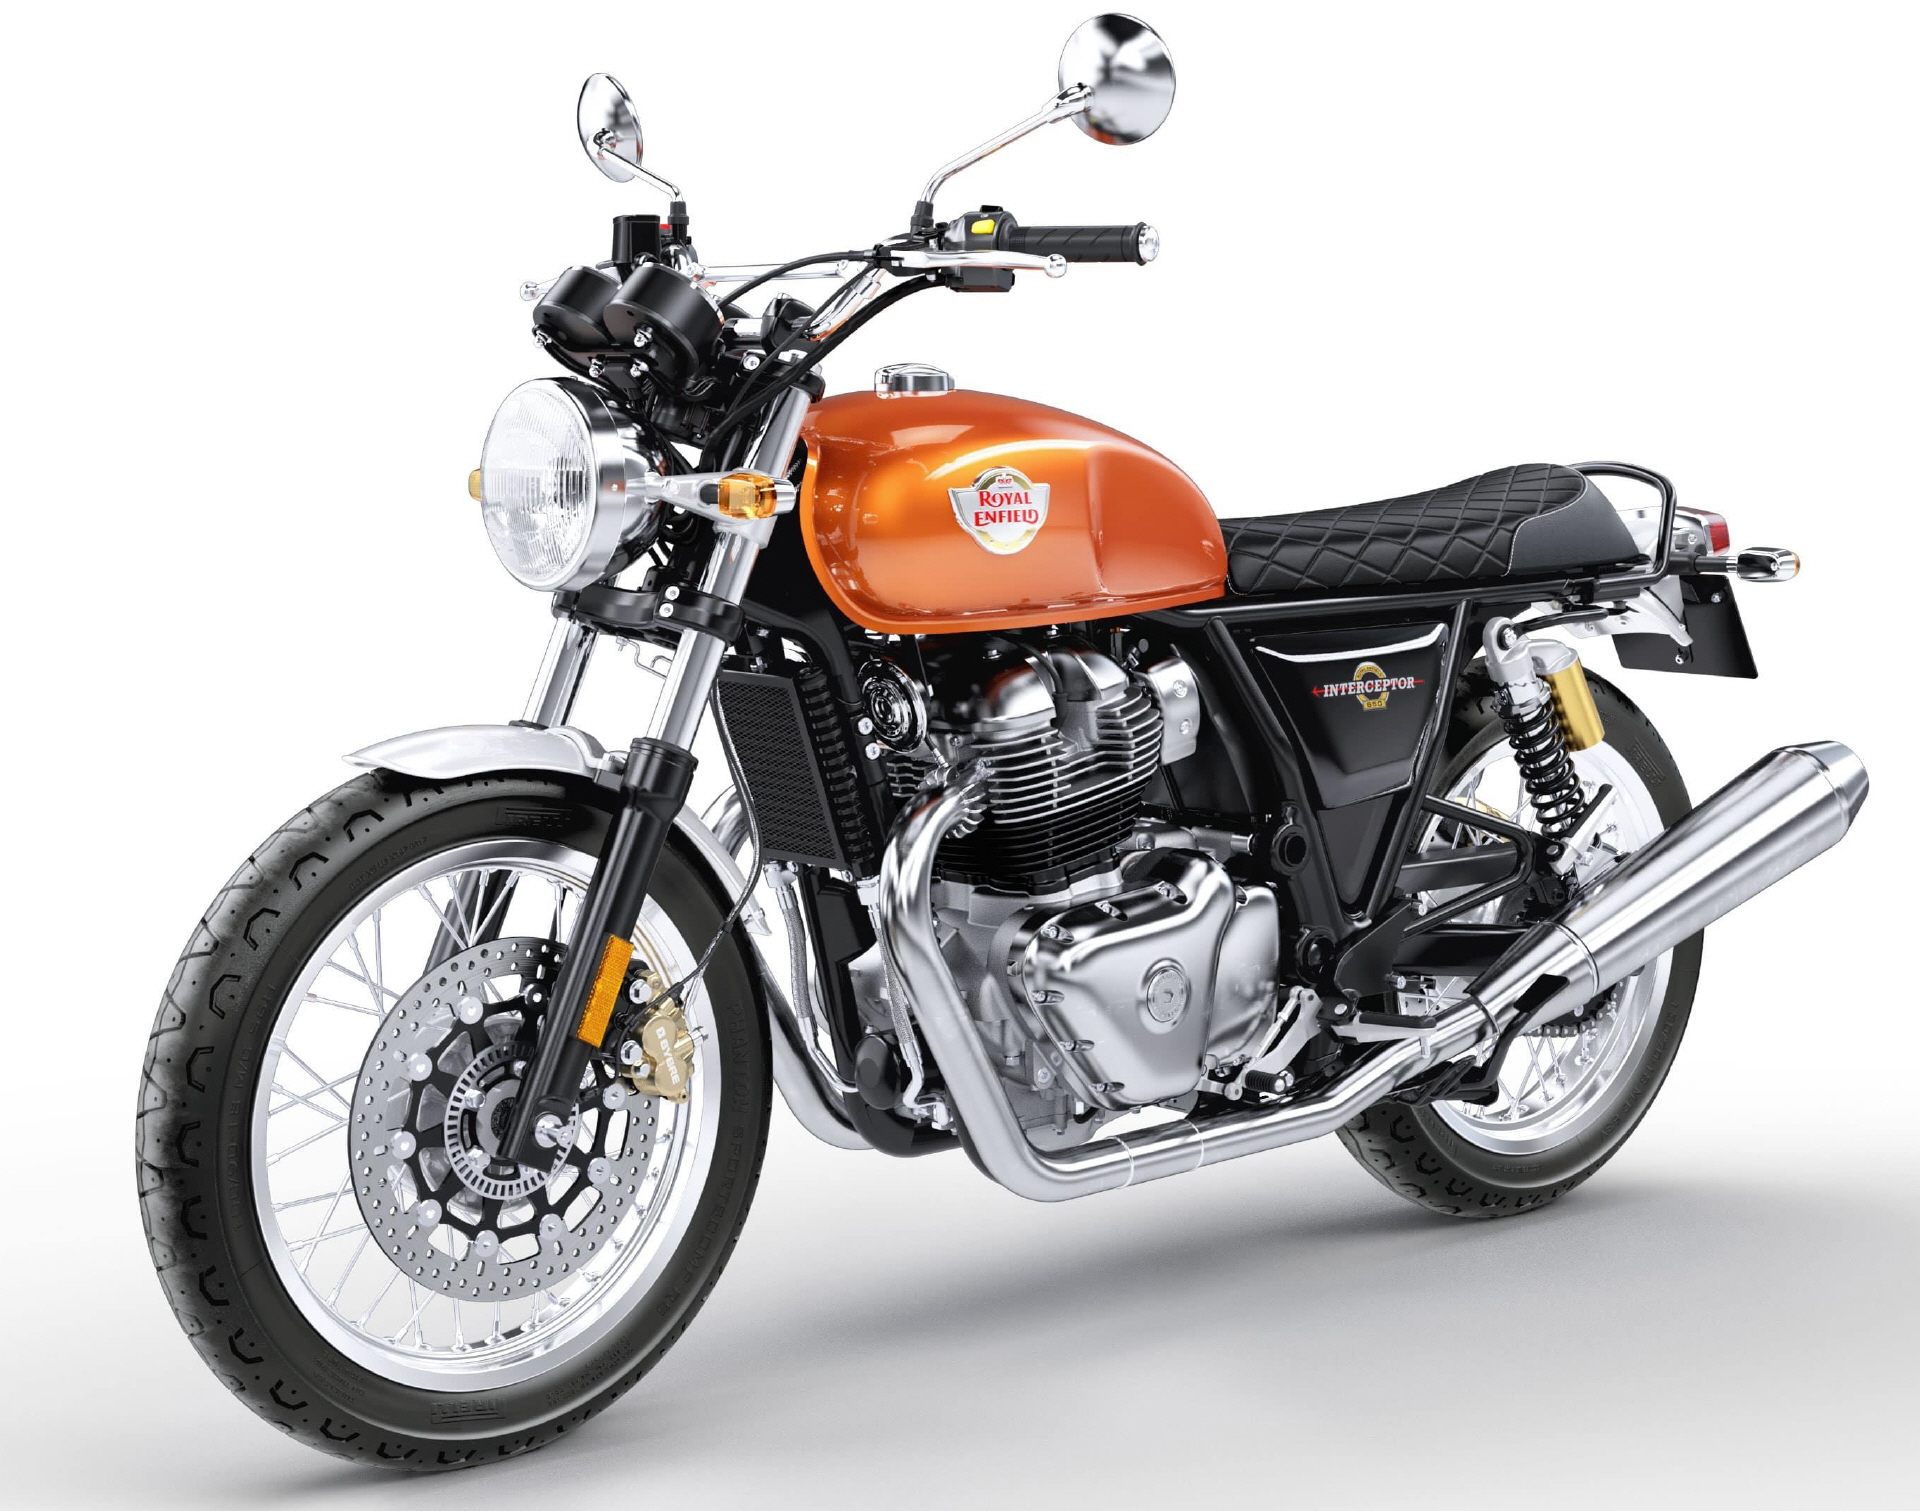 royalenfield_interceptor_twin_01jpg